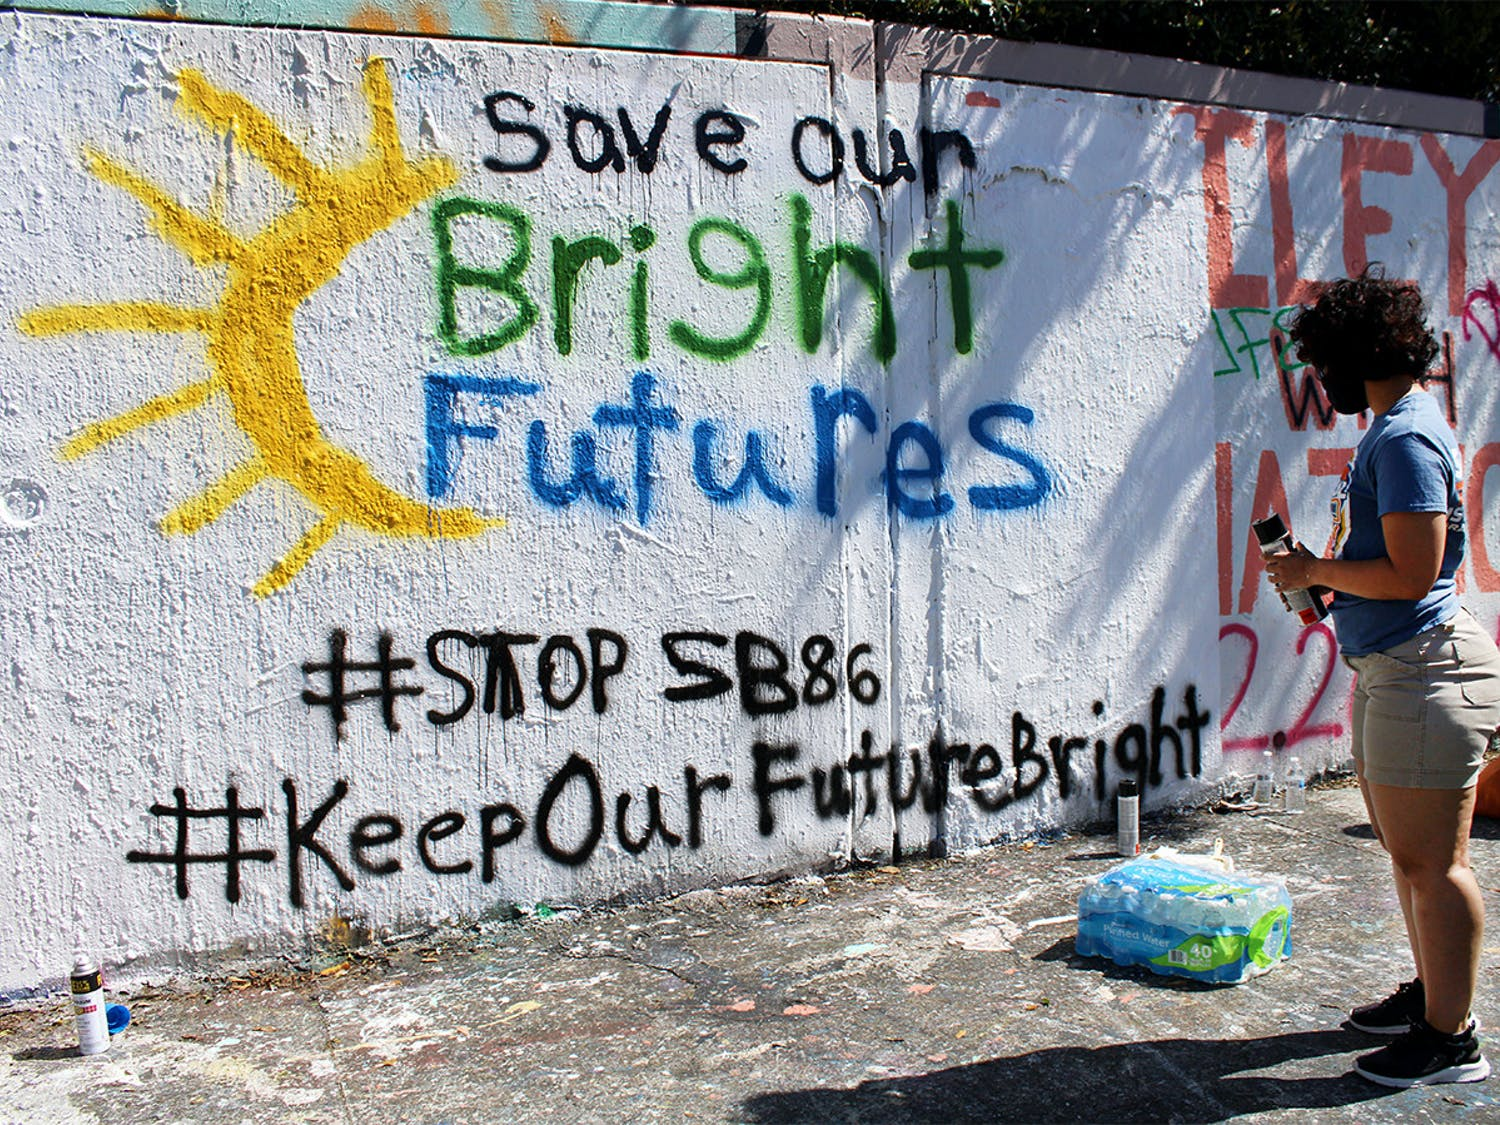 """Alondra Arce, 20, a sustainability sophomore, looks at the """"Save Our Bright Futures"""" mural she helped paint on the side of 34th Street in Gainesville on Sunday, March 7, 2021."""